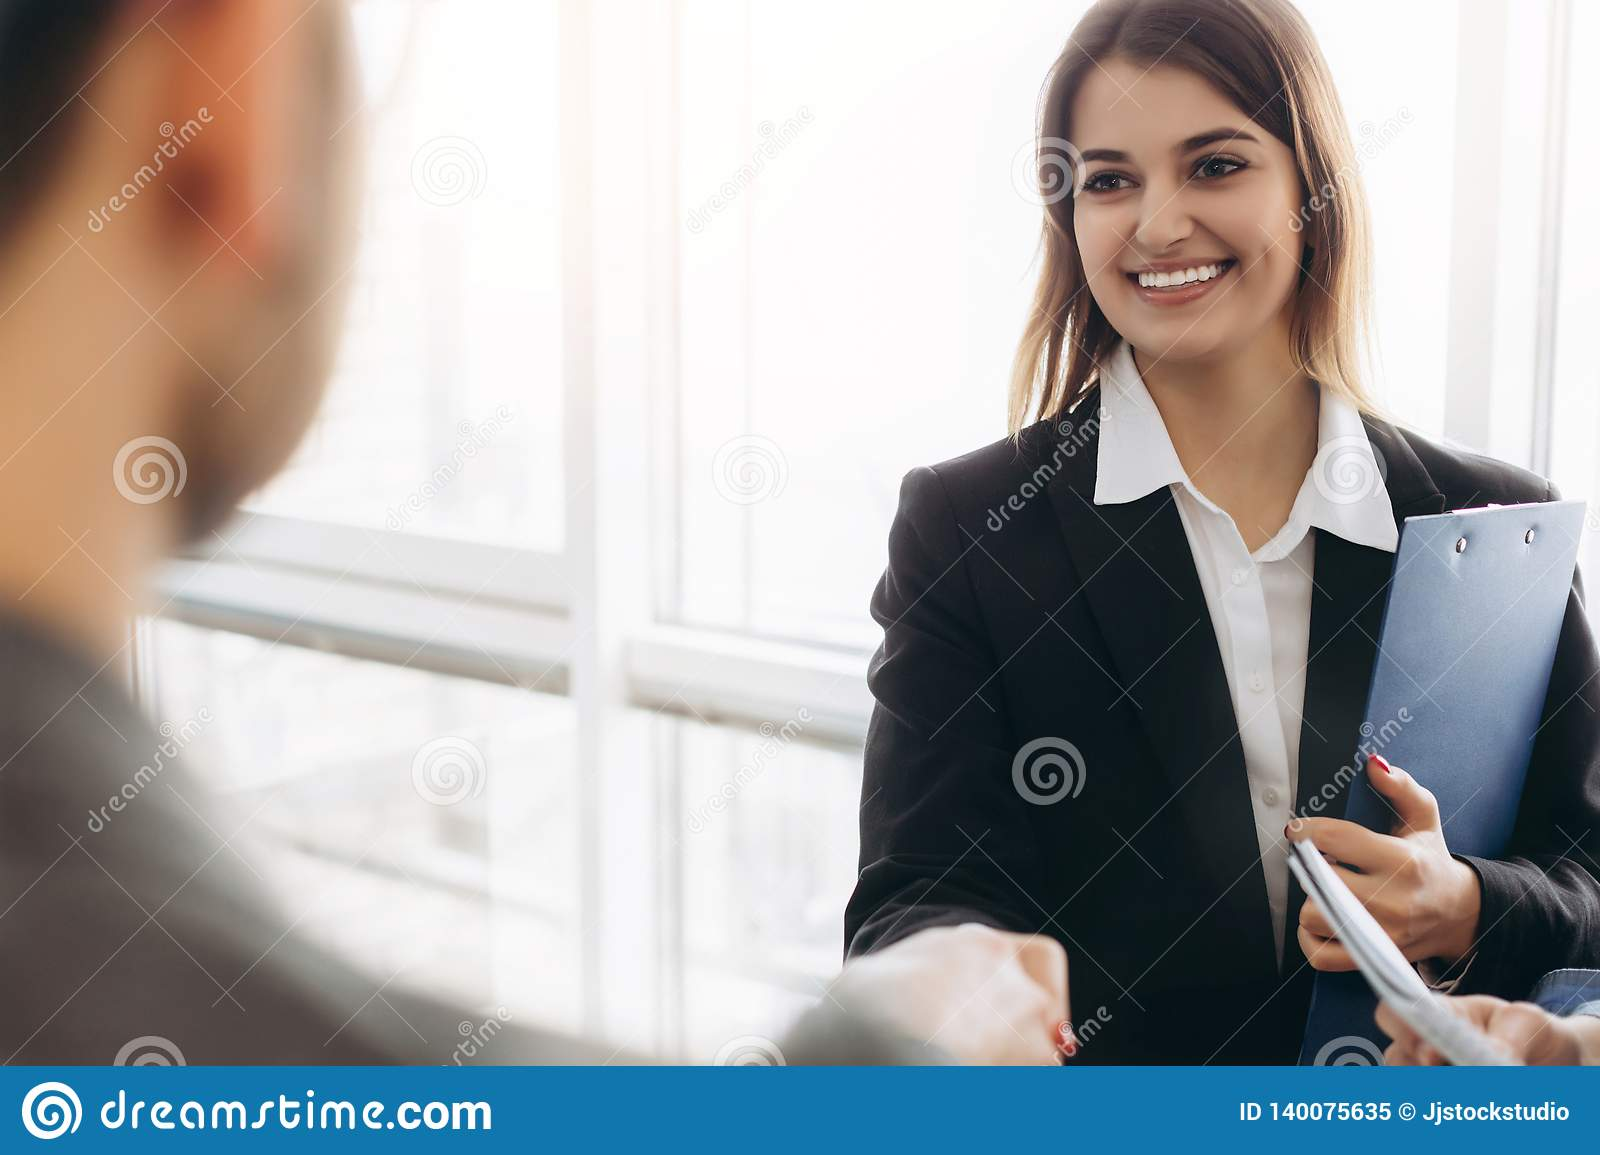 Smiling attractive businesswoman handshaking with businessman after pleasant talk, good relationships. Business concept photo